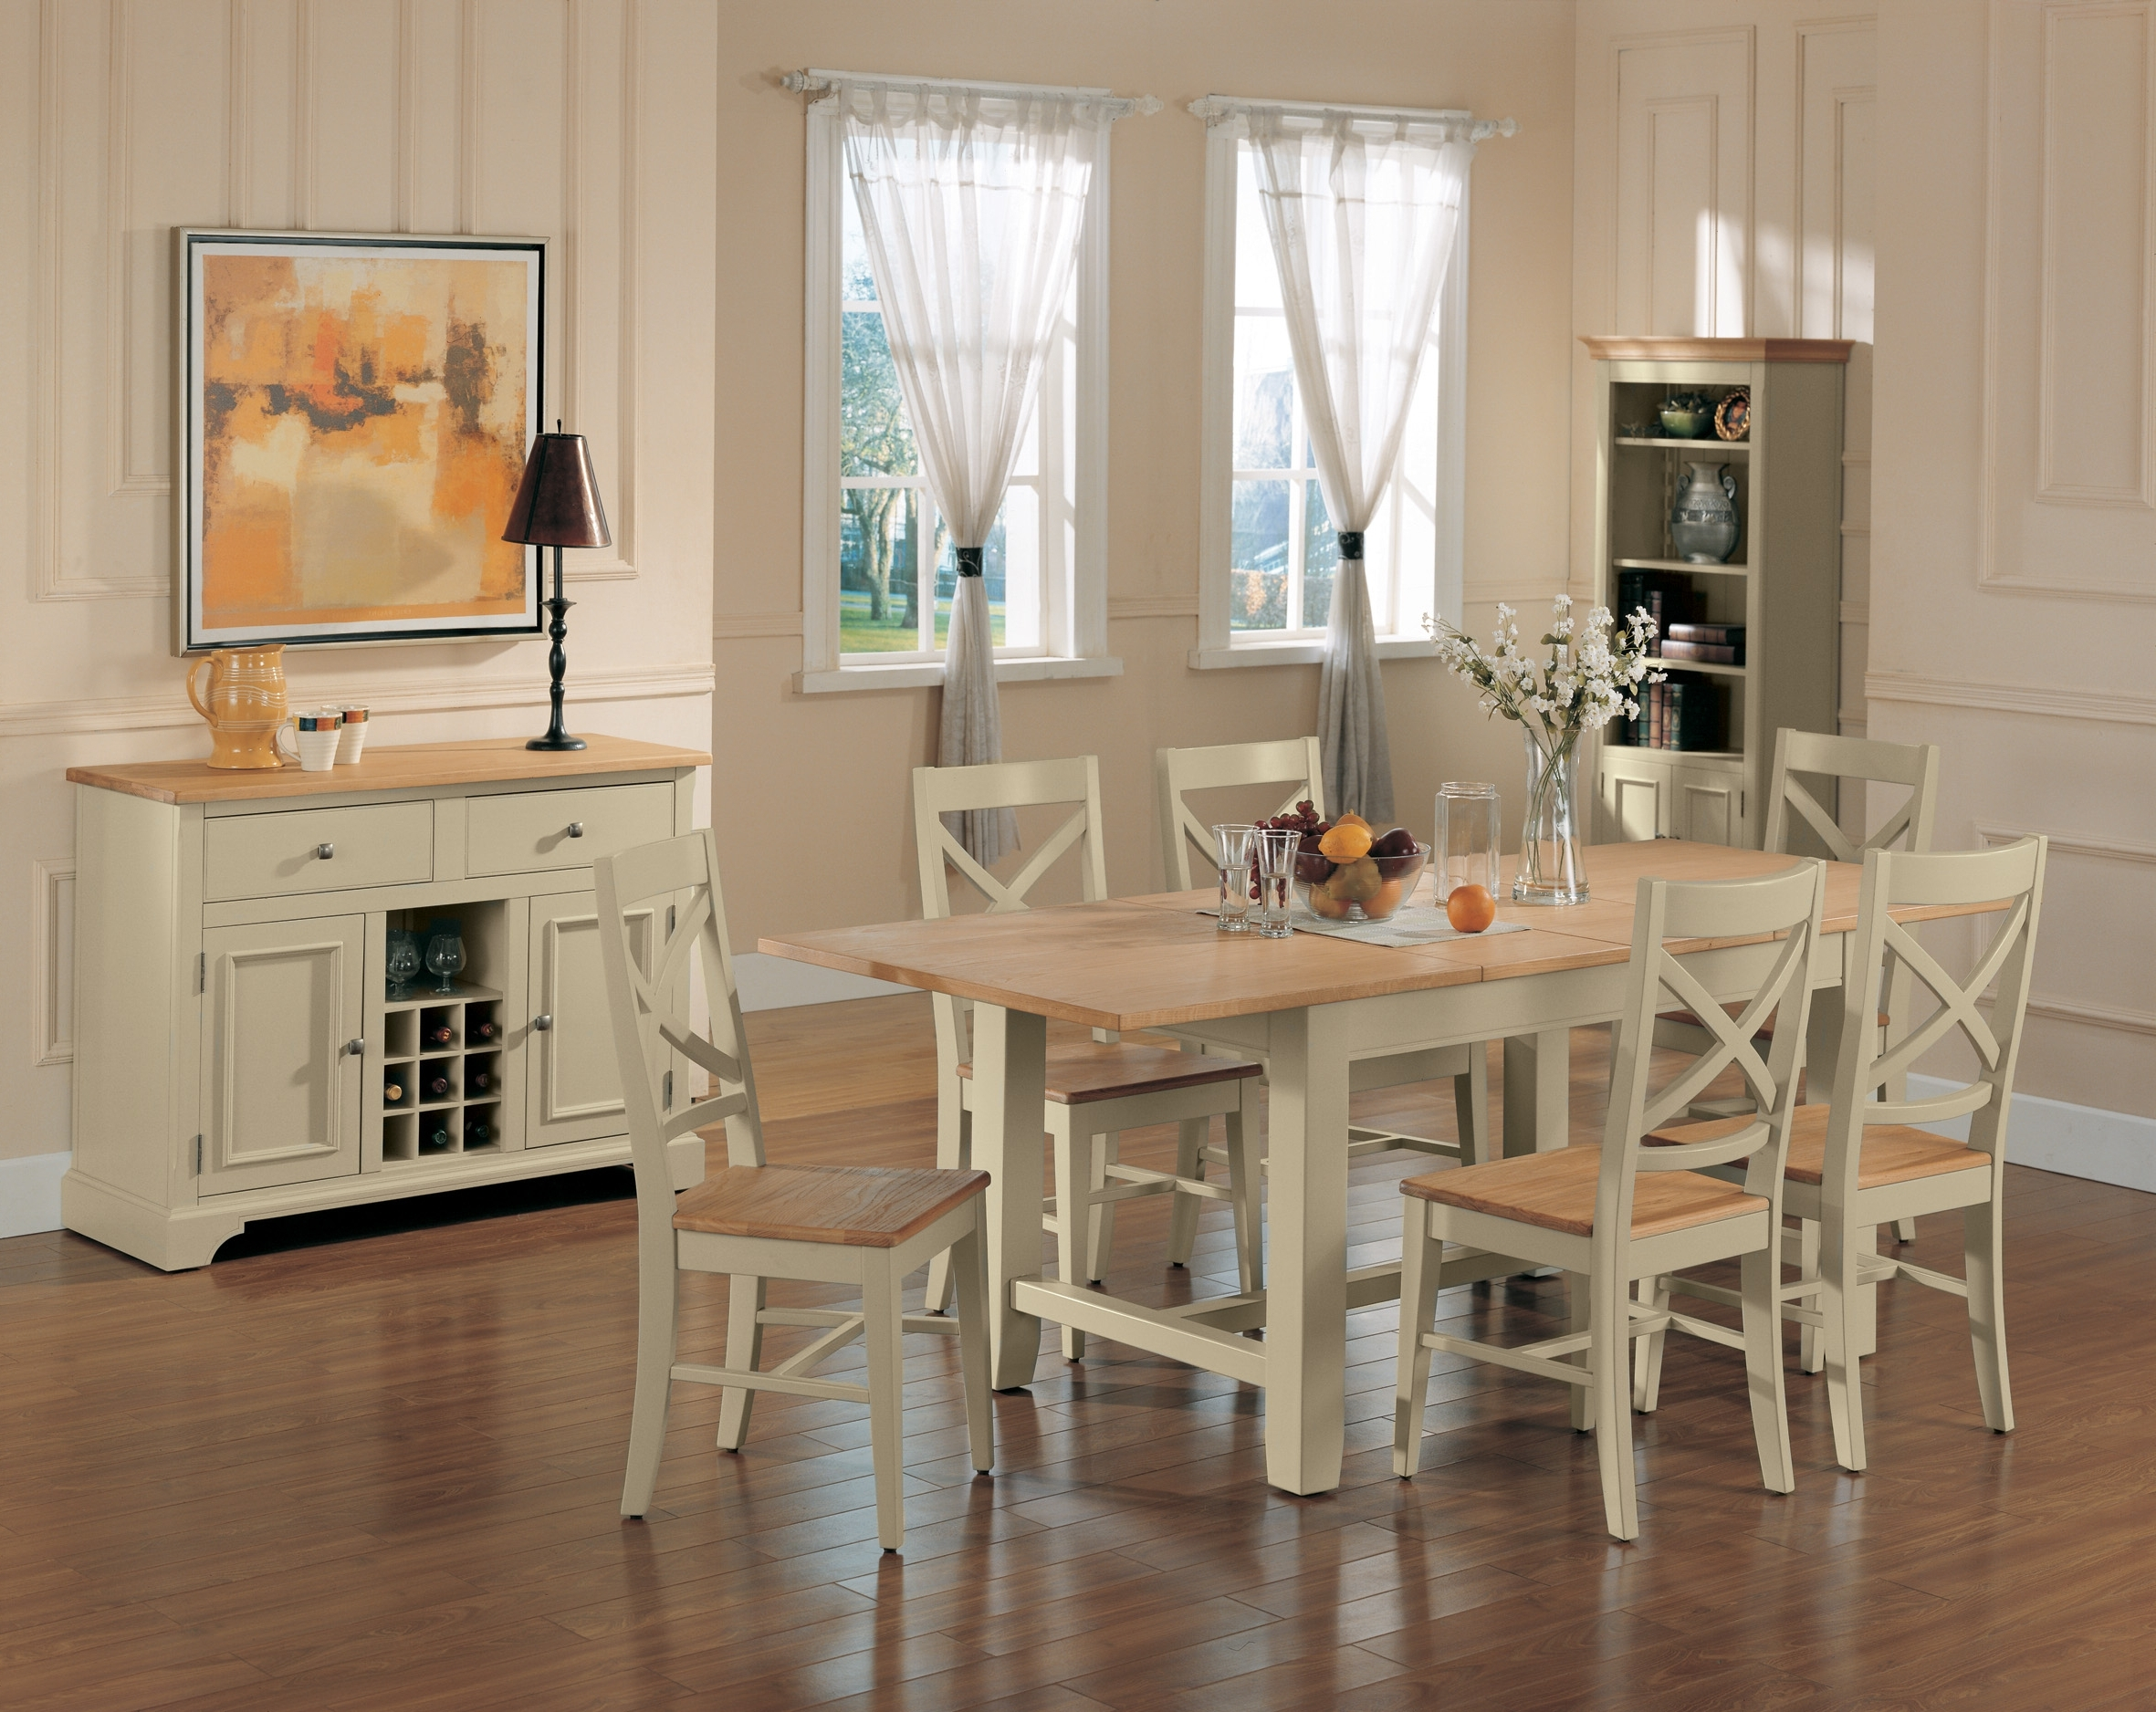 Decorative How To Paint A Dining Room Table Shabby Chic With Cool Throughout Well Known Shabby Chic Cream Dining Tables And Chairs (View 12 of 25)